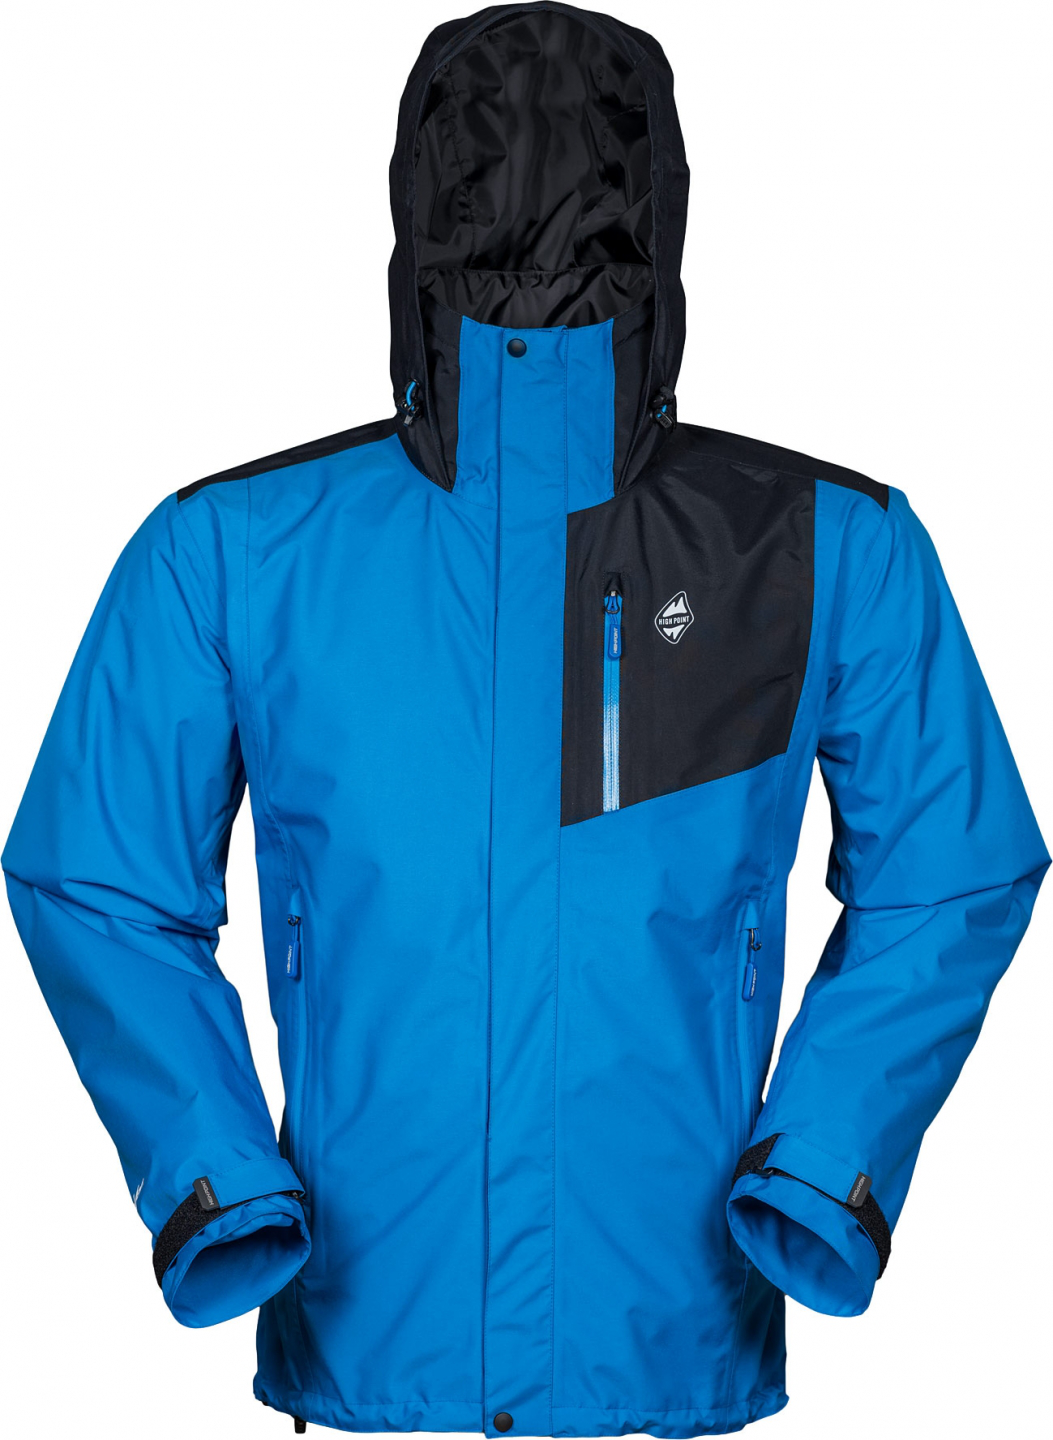 HIGH POINT Superior 2.0 Jacket